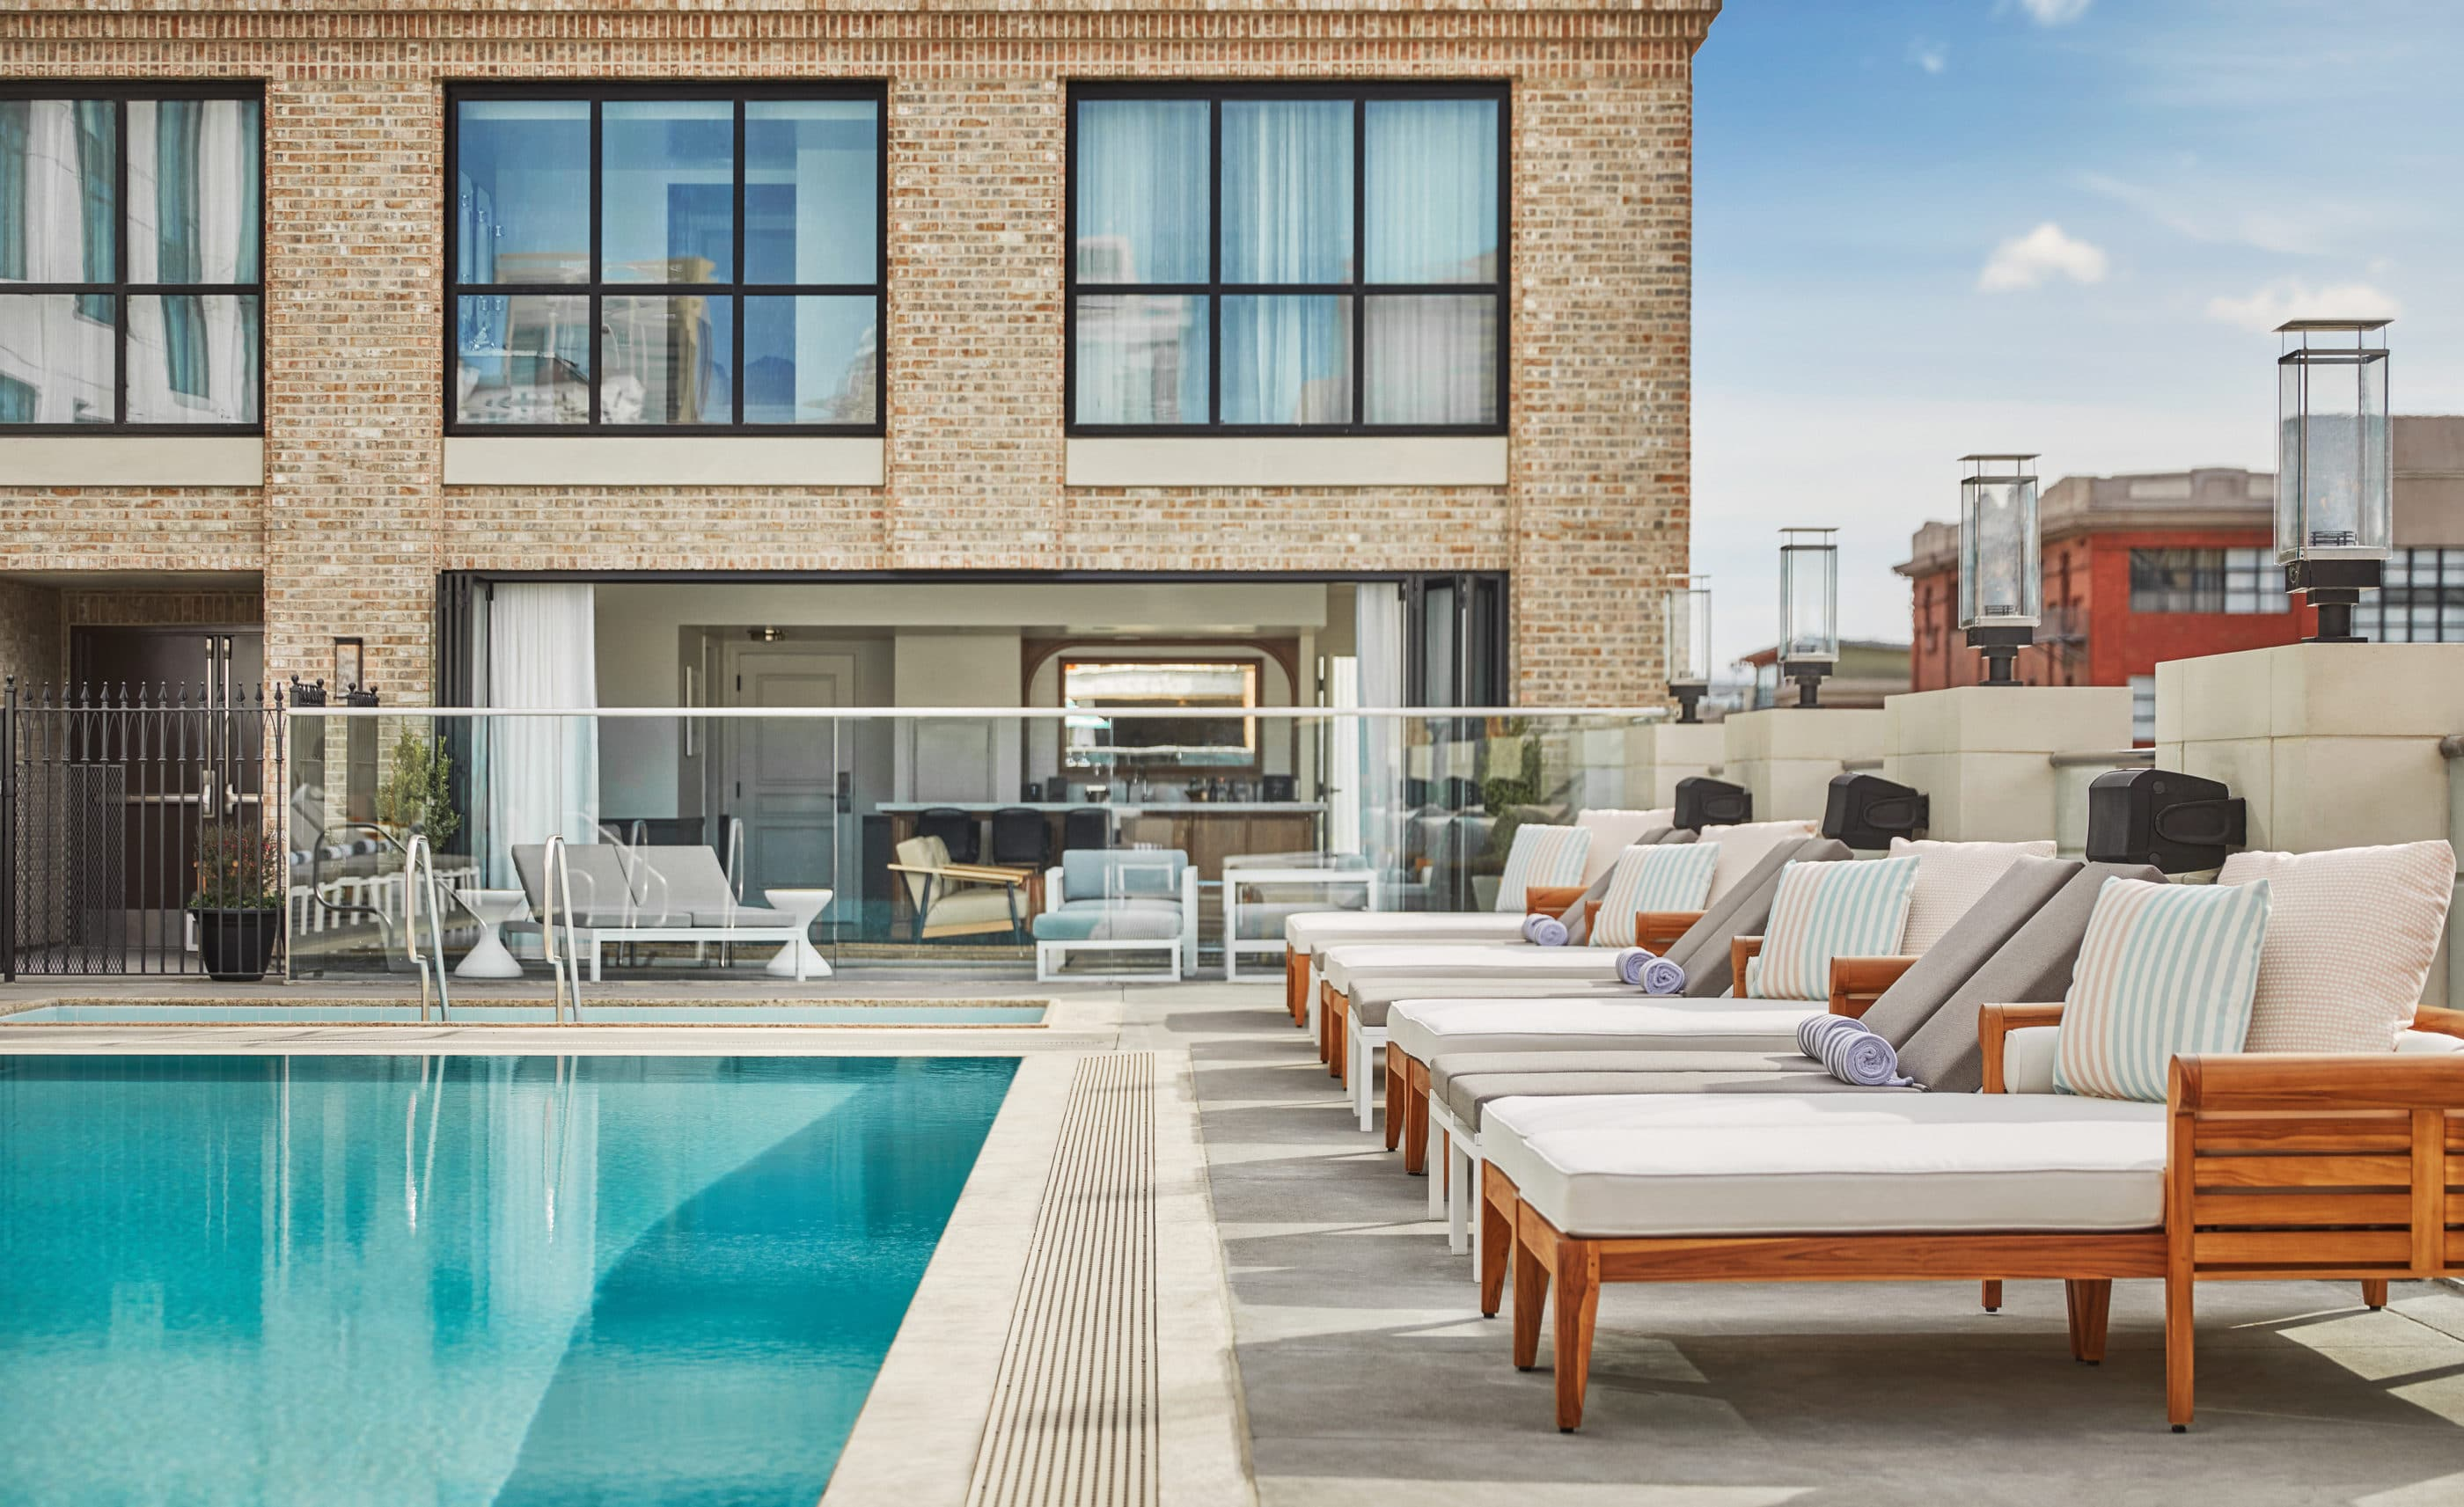 Plush lounge chairs by the pool at Pendry San Diego, one of our favorite boutique hotels.